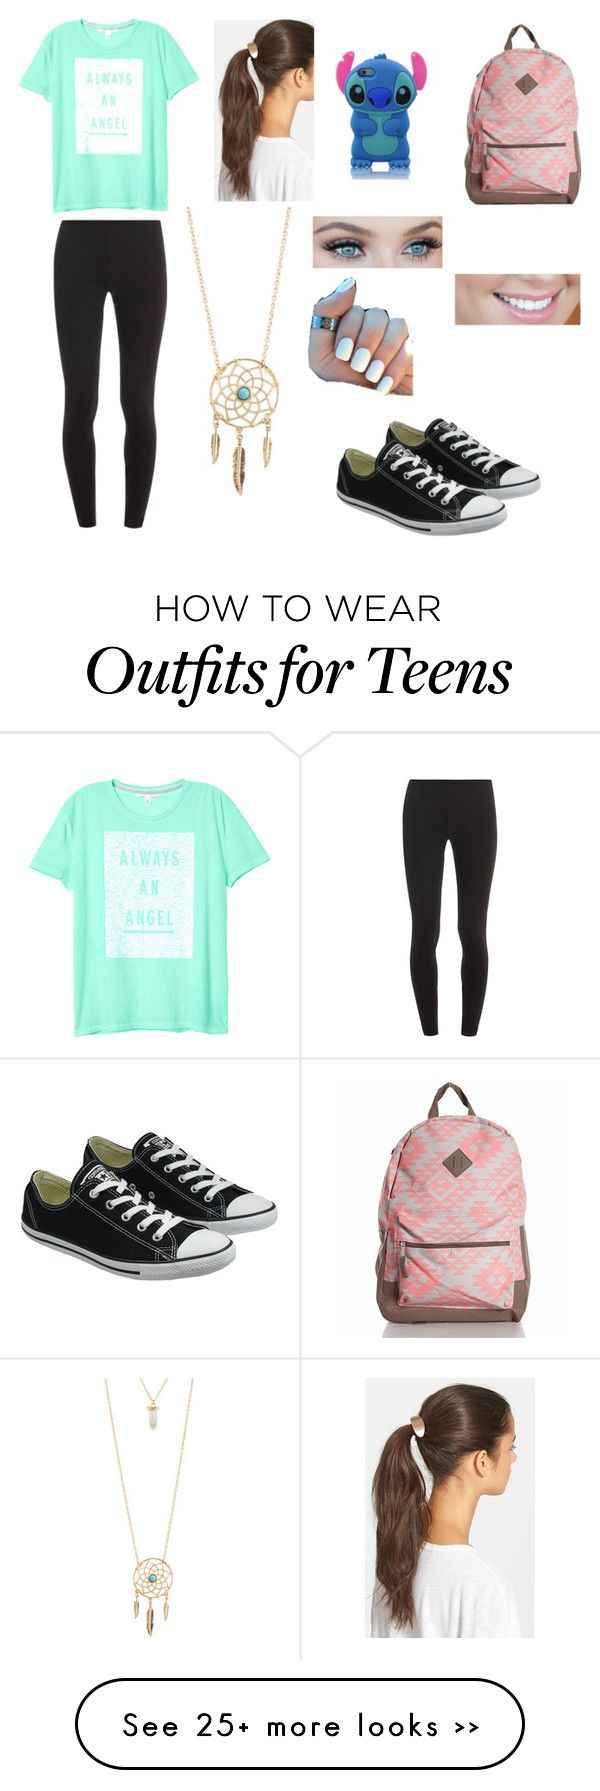 """Back To School Outfit For Teens!"" by pinktropicalparadise on Polyvore featuring Converse, Splendid, Victoria's Secret, Tasha and Aéropostale"